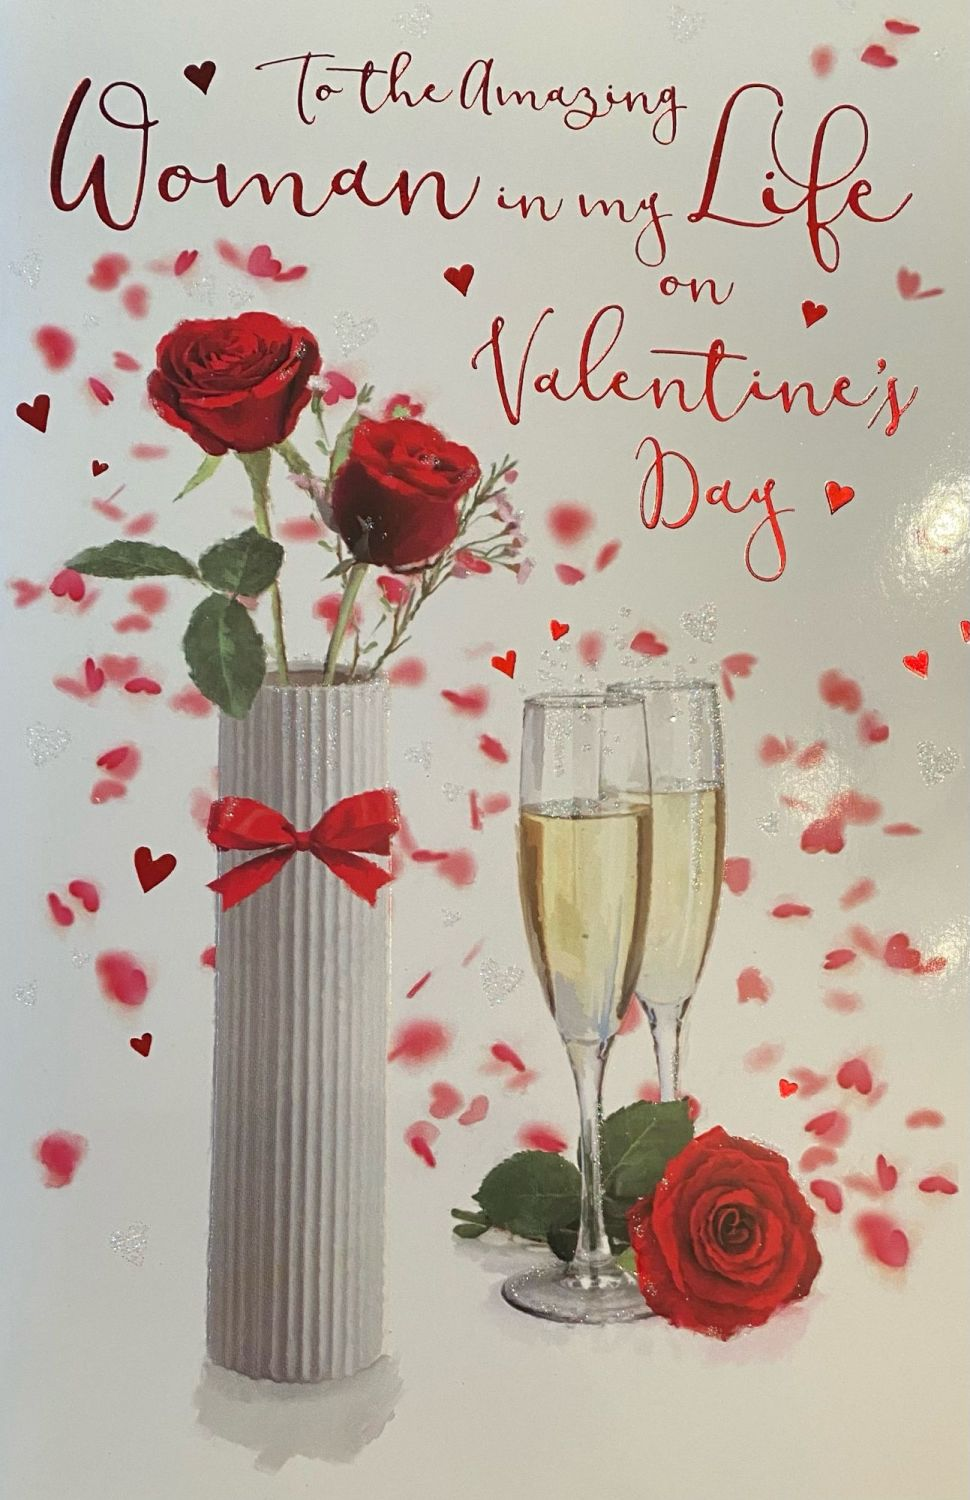 To The Amazing Woman In My Life On Valentine's Day - Card